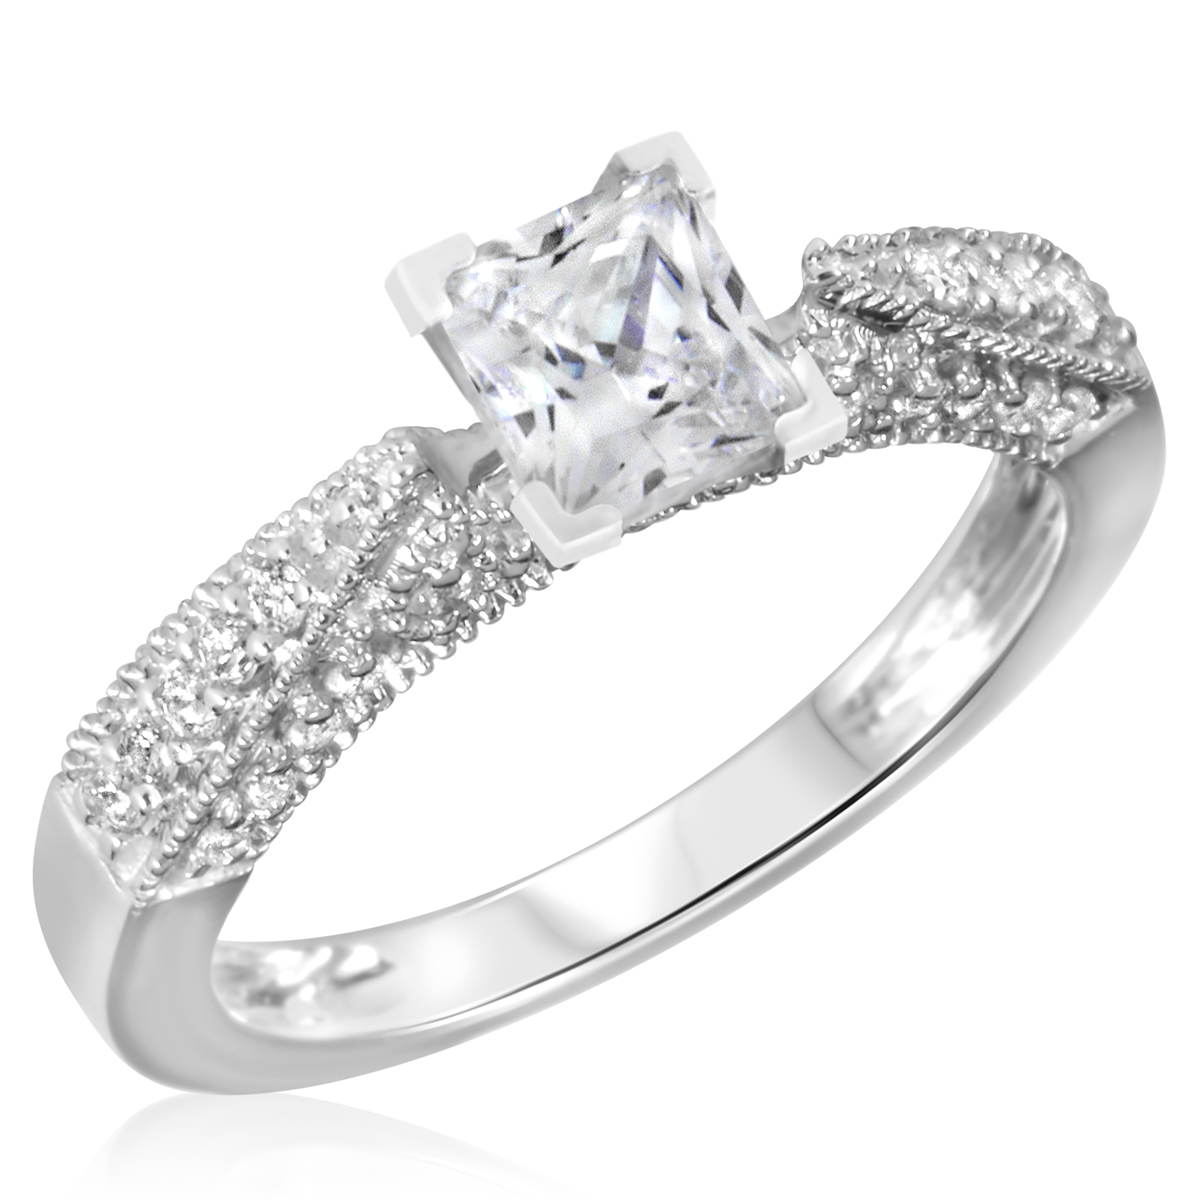 1 1/3 CT. T.W. Diamond Ladies Engagement Ring 14K White Gold- Size 8